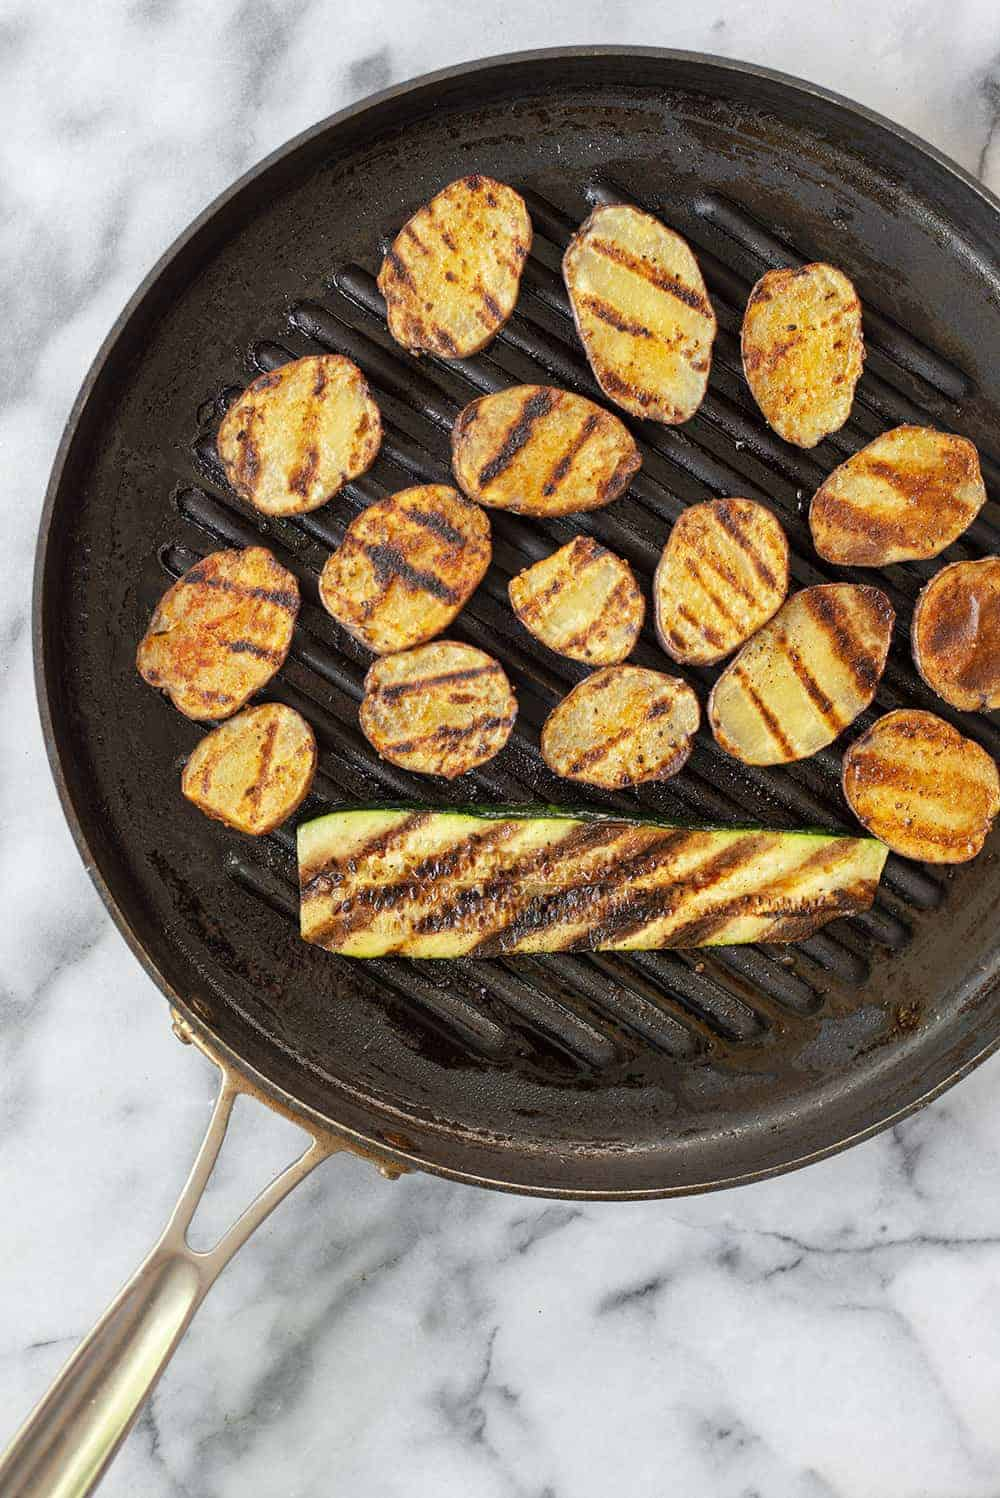 grill pan with potatoes and vegetables